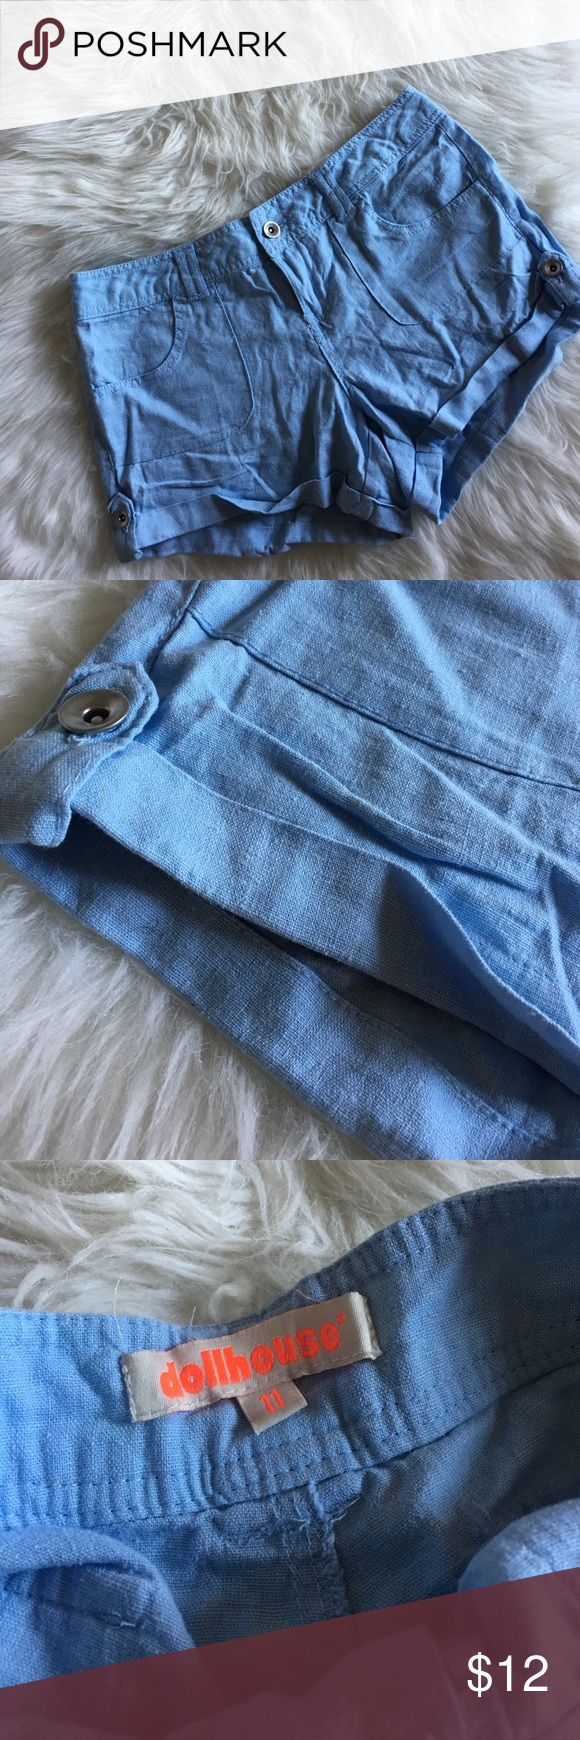 Light Blue Shorts. NWOT. Light blue Dollhouse shorts. Size 11 Dollhouse Shorts